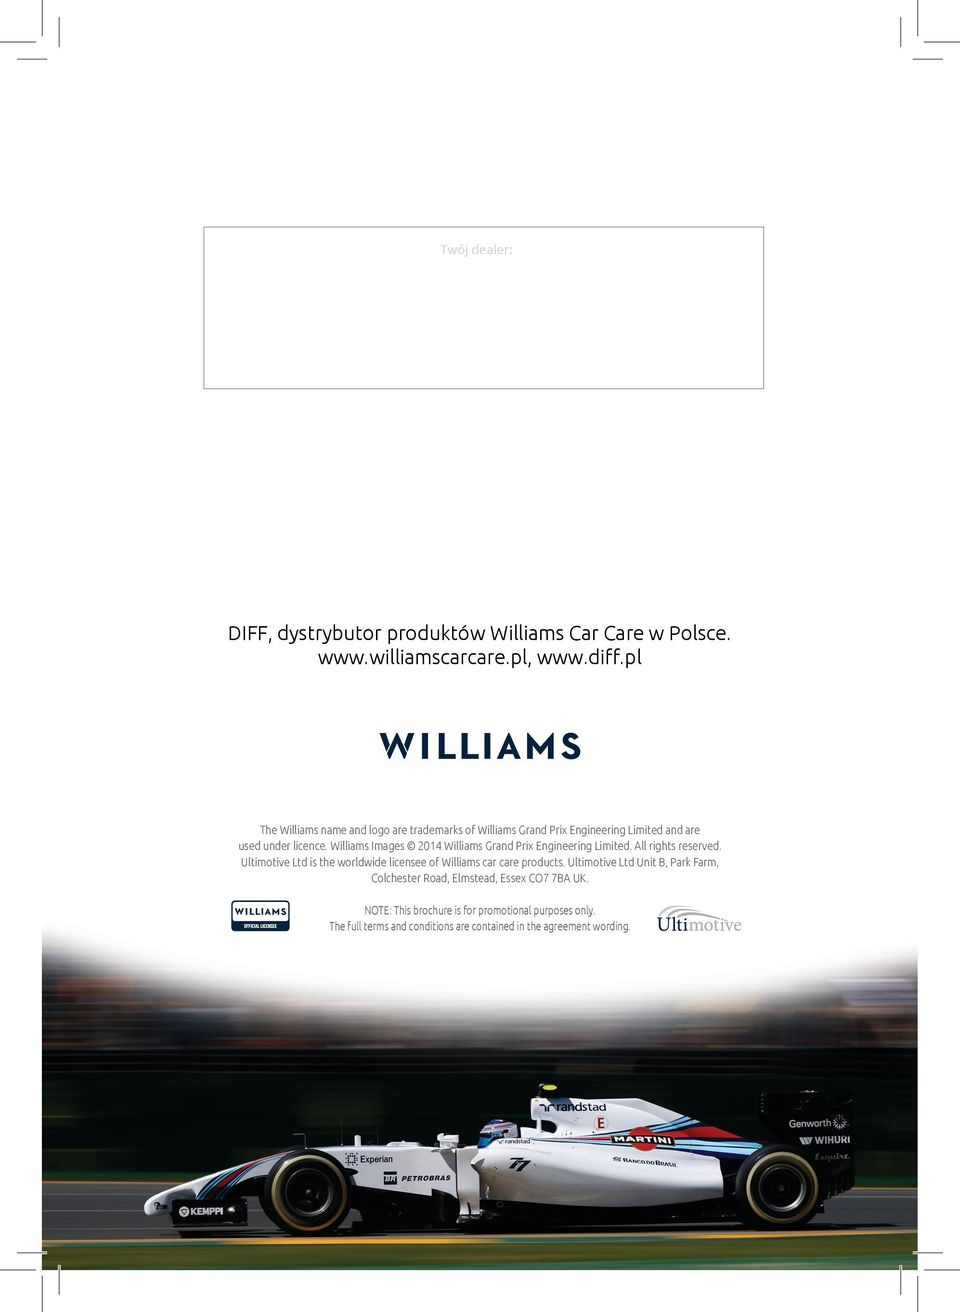 Williams Images 2014 Williams Grand Prix Engineering Limited. All rights reserved.